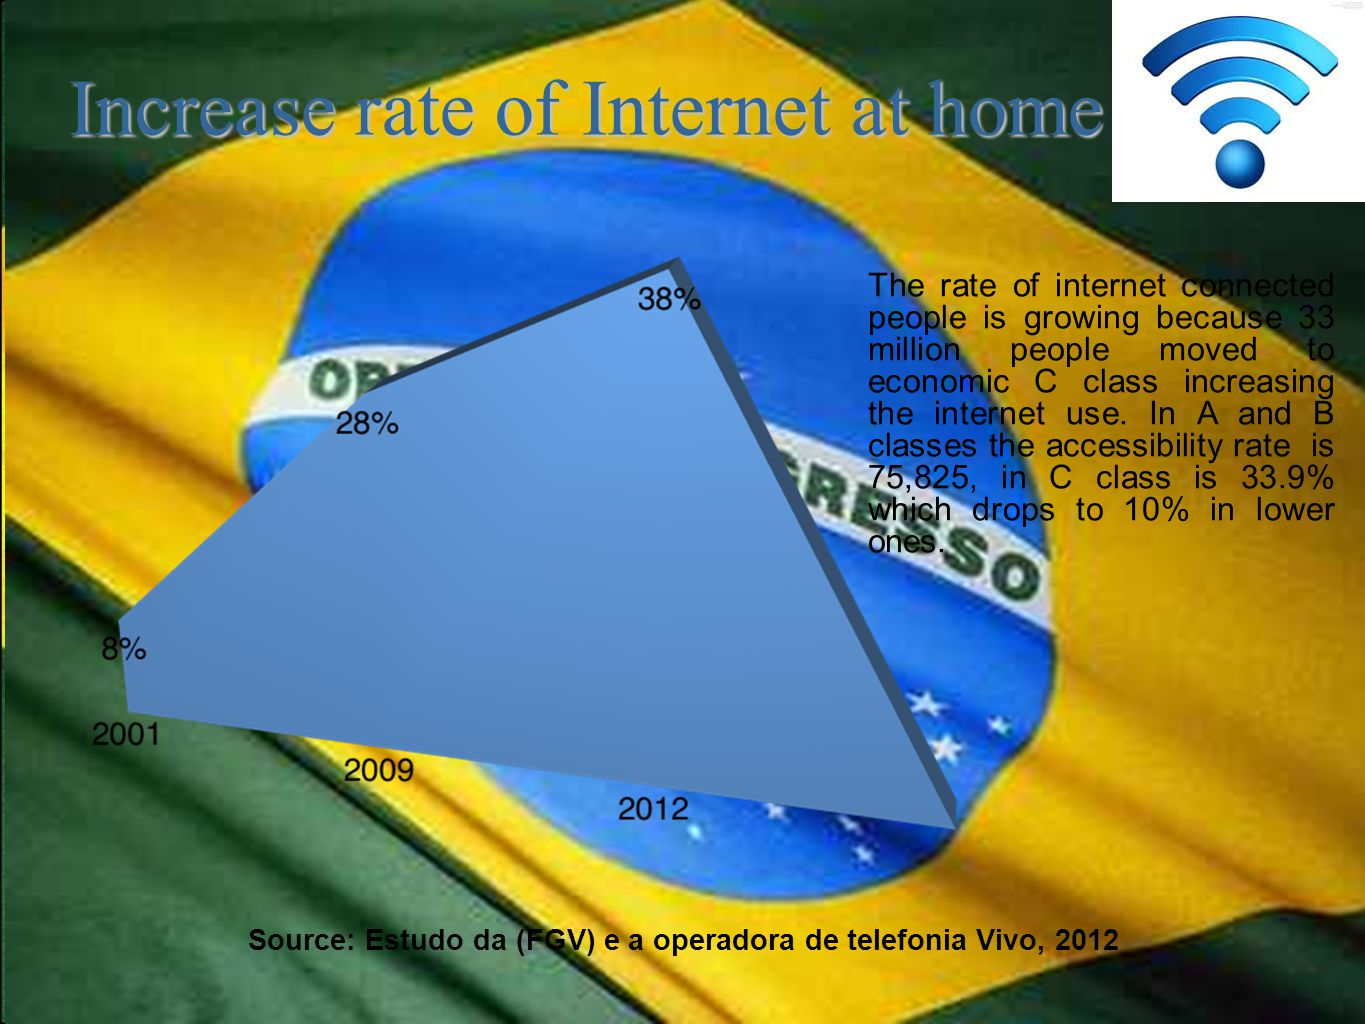 Increase rate of Internet at home Increase rate of Internet at home Source: Estudo da (FGV) e a operadora de telefonia Vivo, 2012 The rate of internet connected people is growing because 33 million people moved to economic C class increasing the internet use.